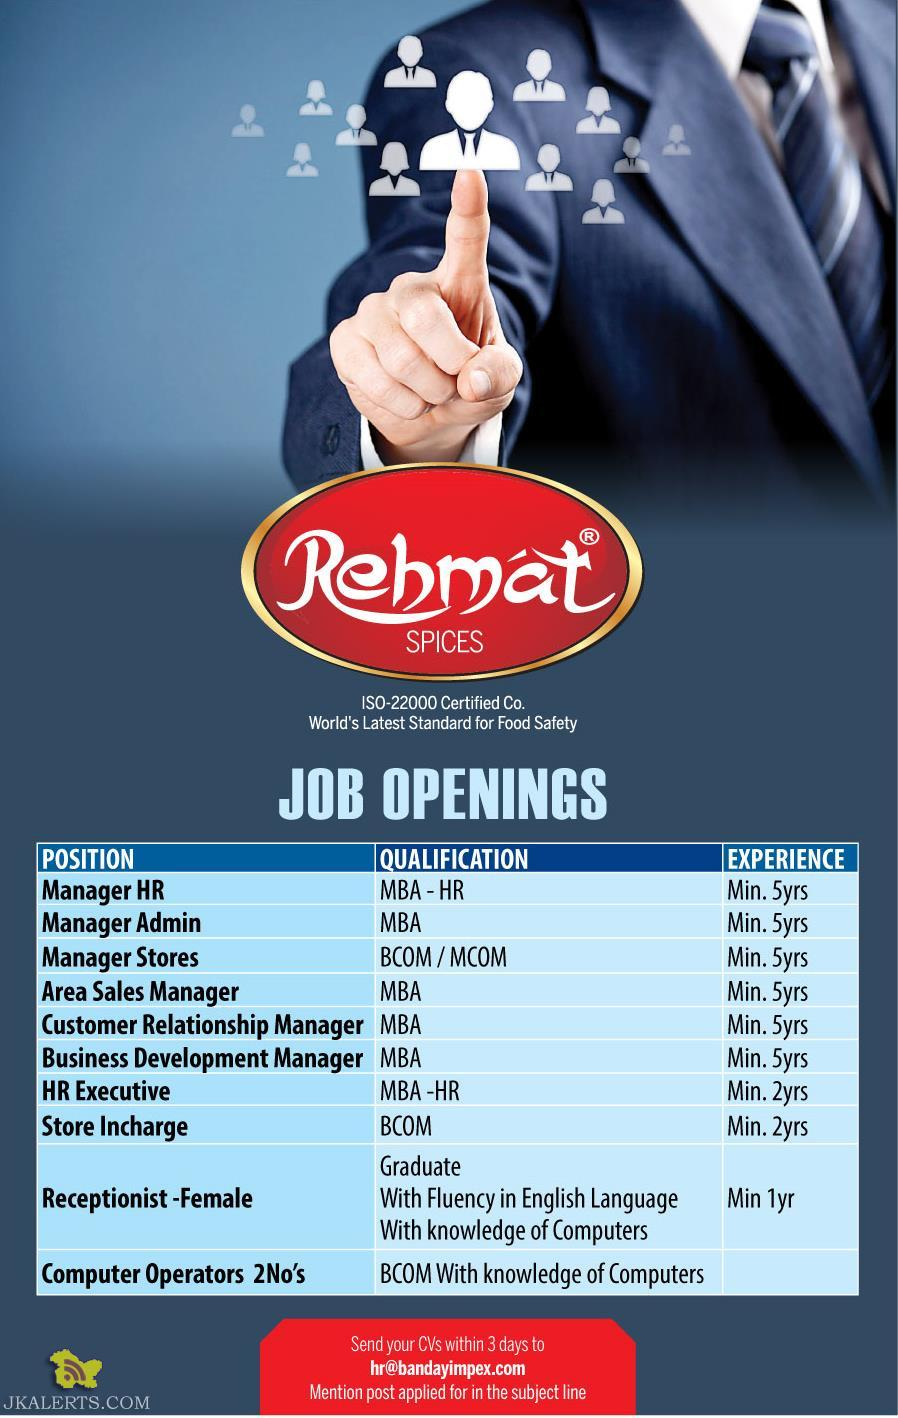 JOBS IN REHMAT SPICES SRINAGAR